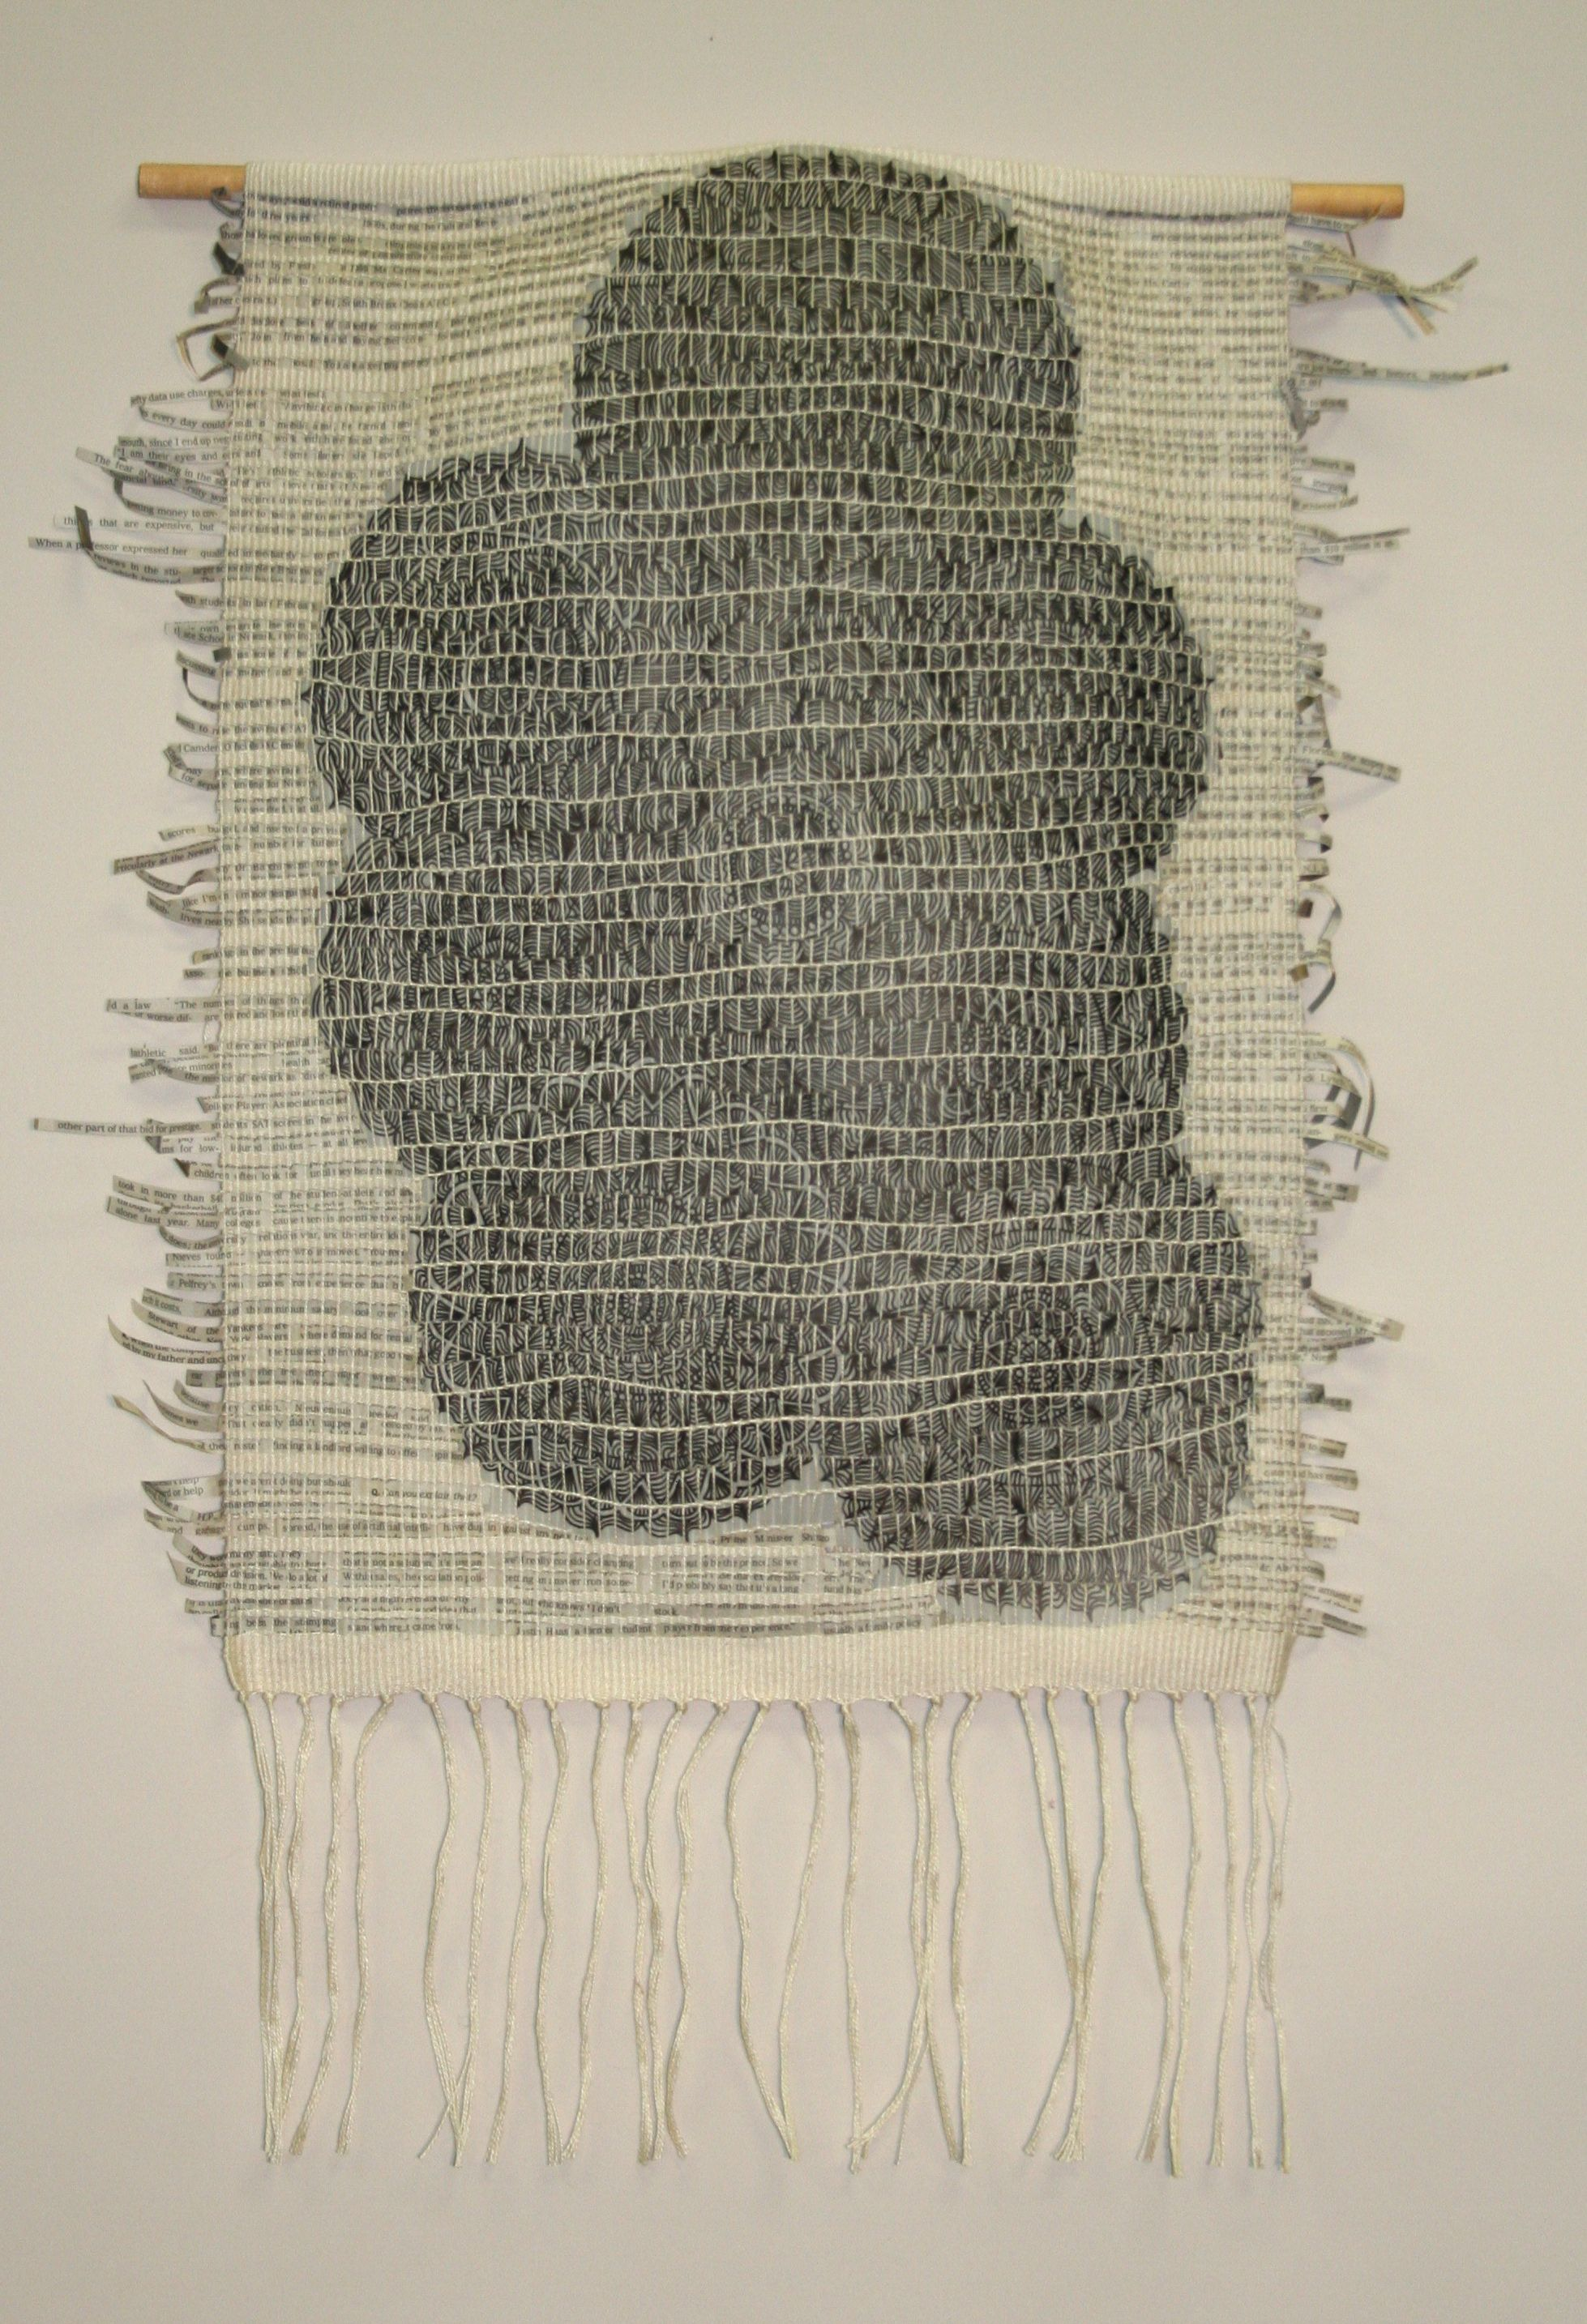 (Dead link - pinning for inspiration only) Nicole Heppard: Kingswood Weaving Studio | cotton + newspaper & ink on mylar strips | Bloomfield Hills, Michigan, U.S.A. | 2013